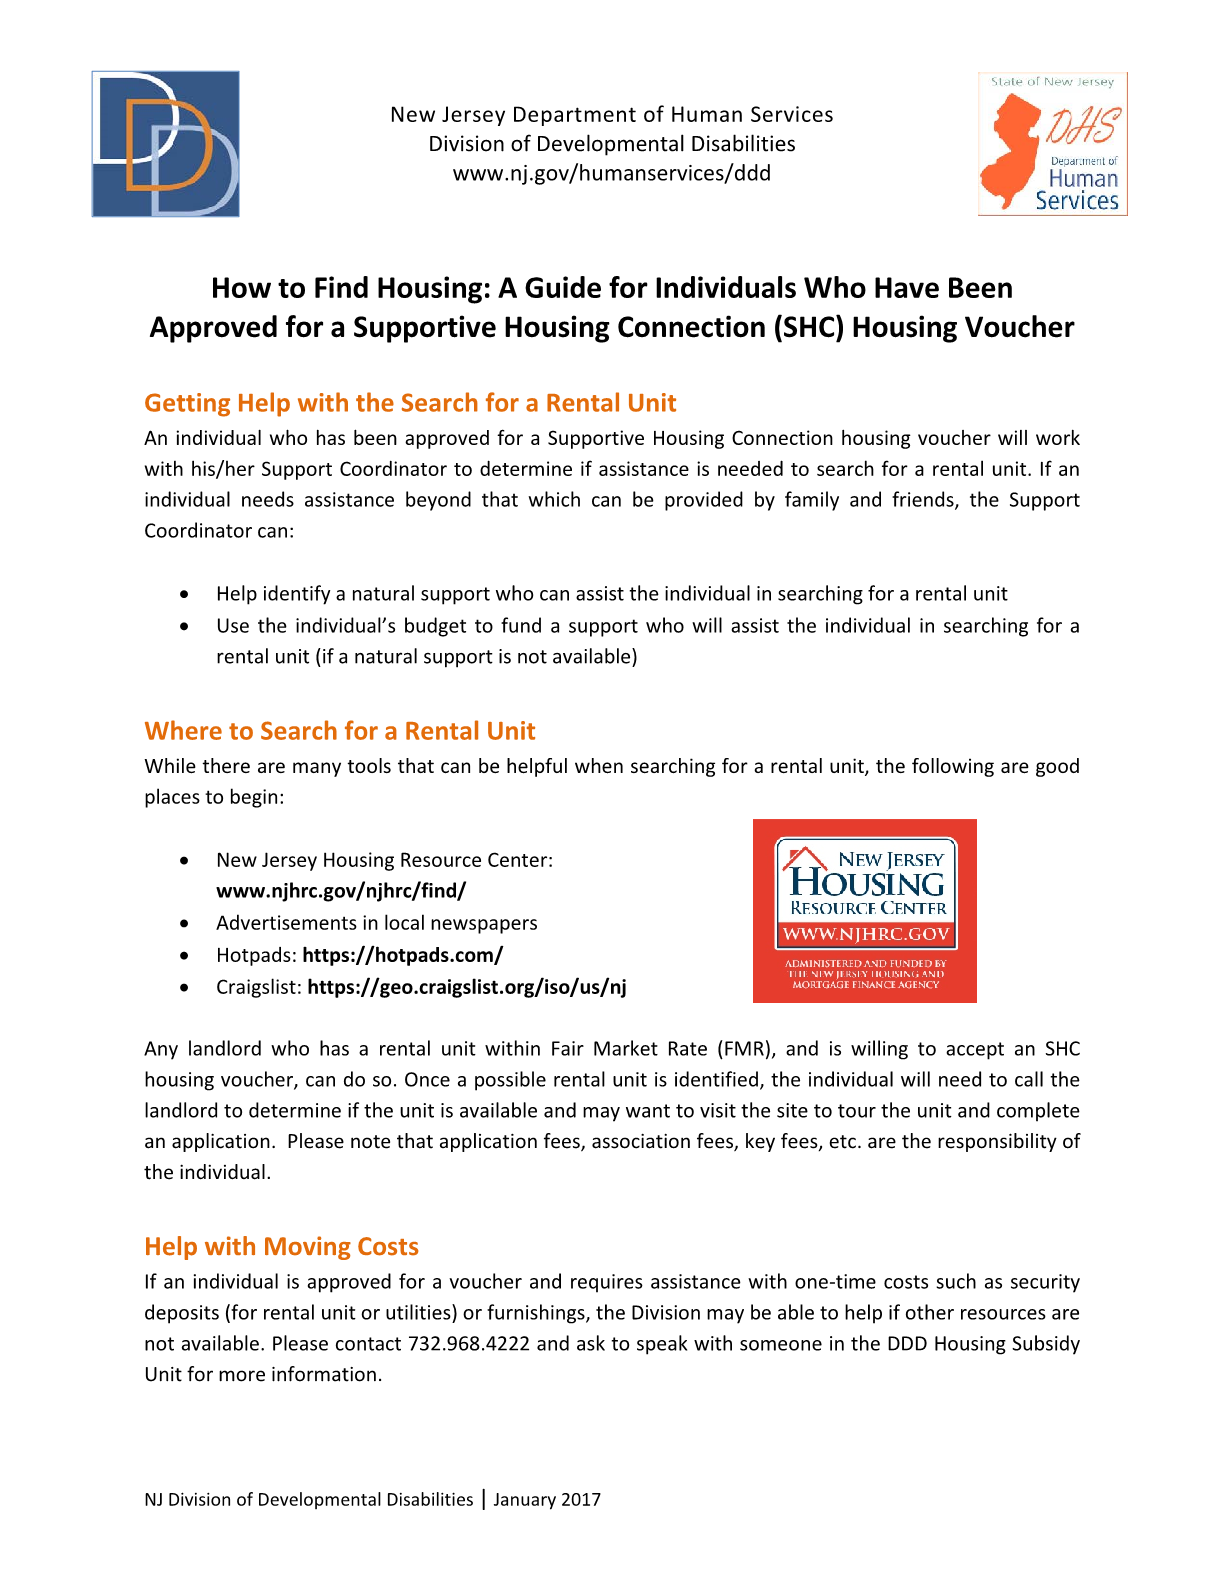 How to Find Housing: A Guide for Individuals Who Have Been Approved for a Supportive Housing Connection (SHC) Housing Voucher